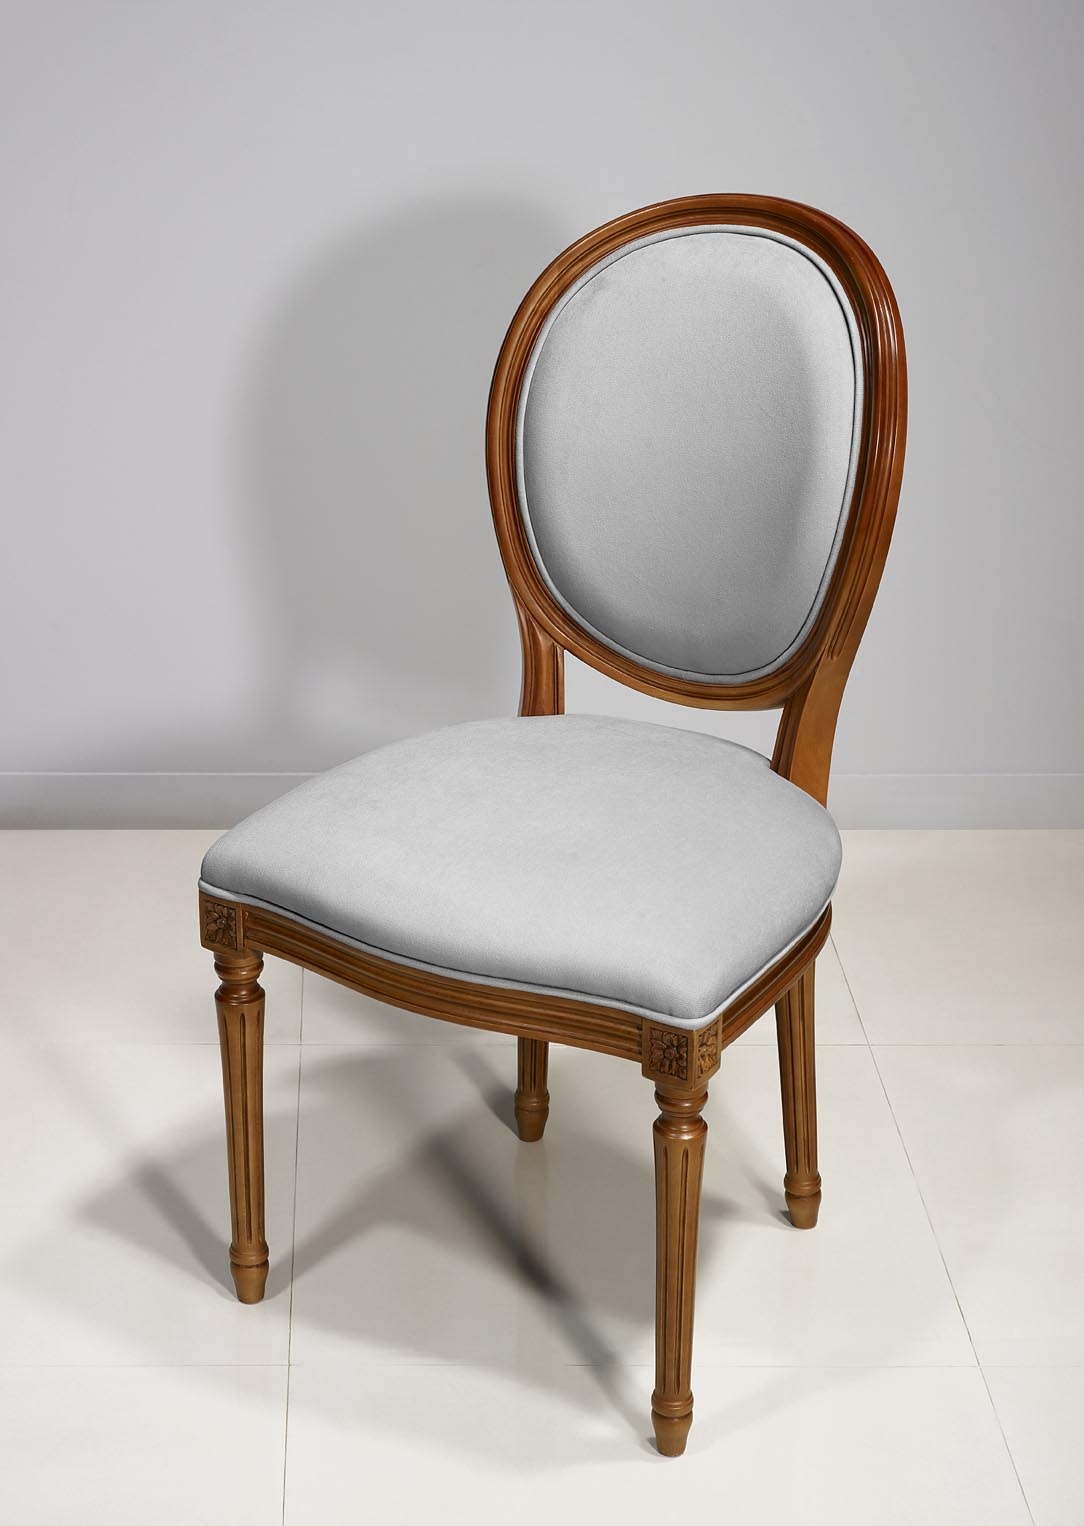 Chaise Emeline En Merisier Massif De Style Louis Xvi Meuble En  # Meuble Tv Louis Xvi